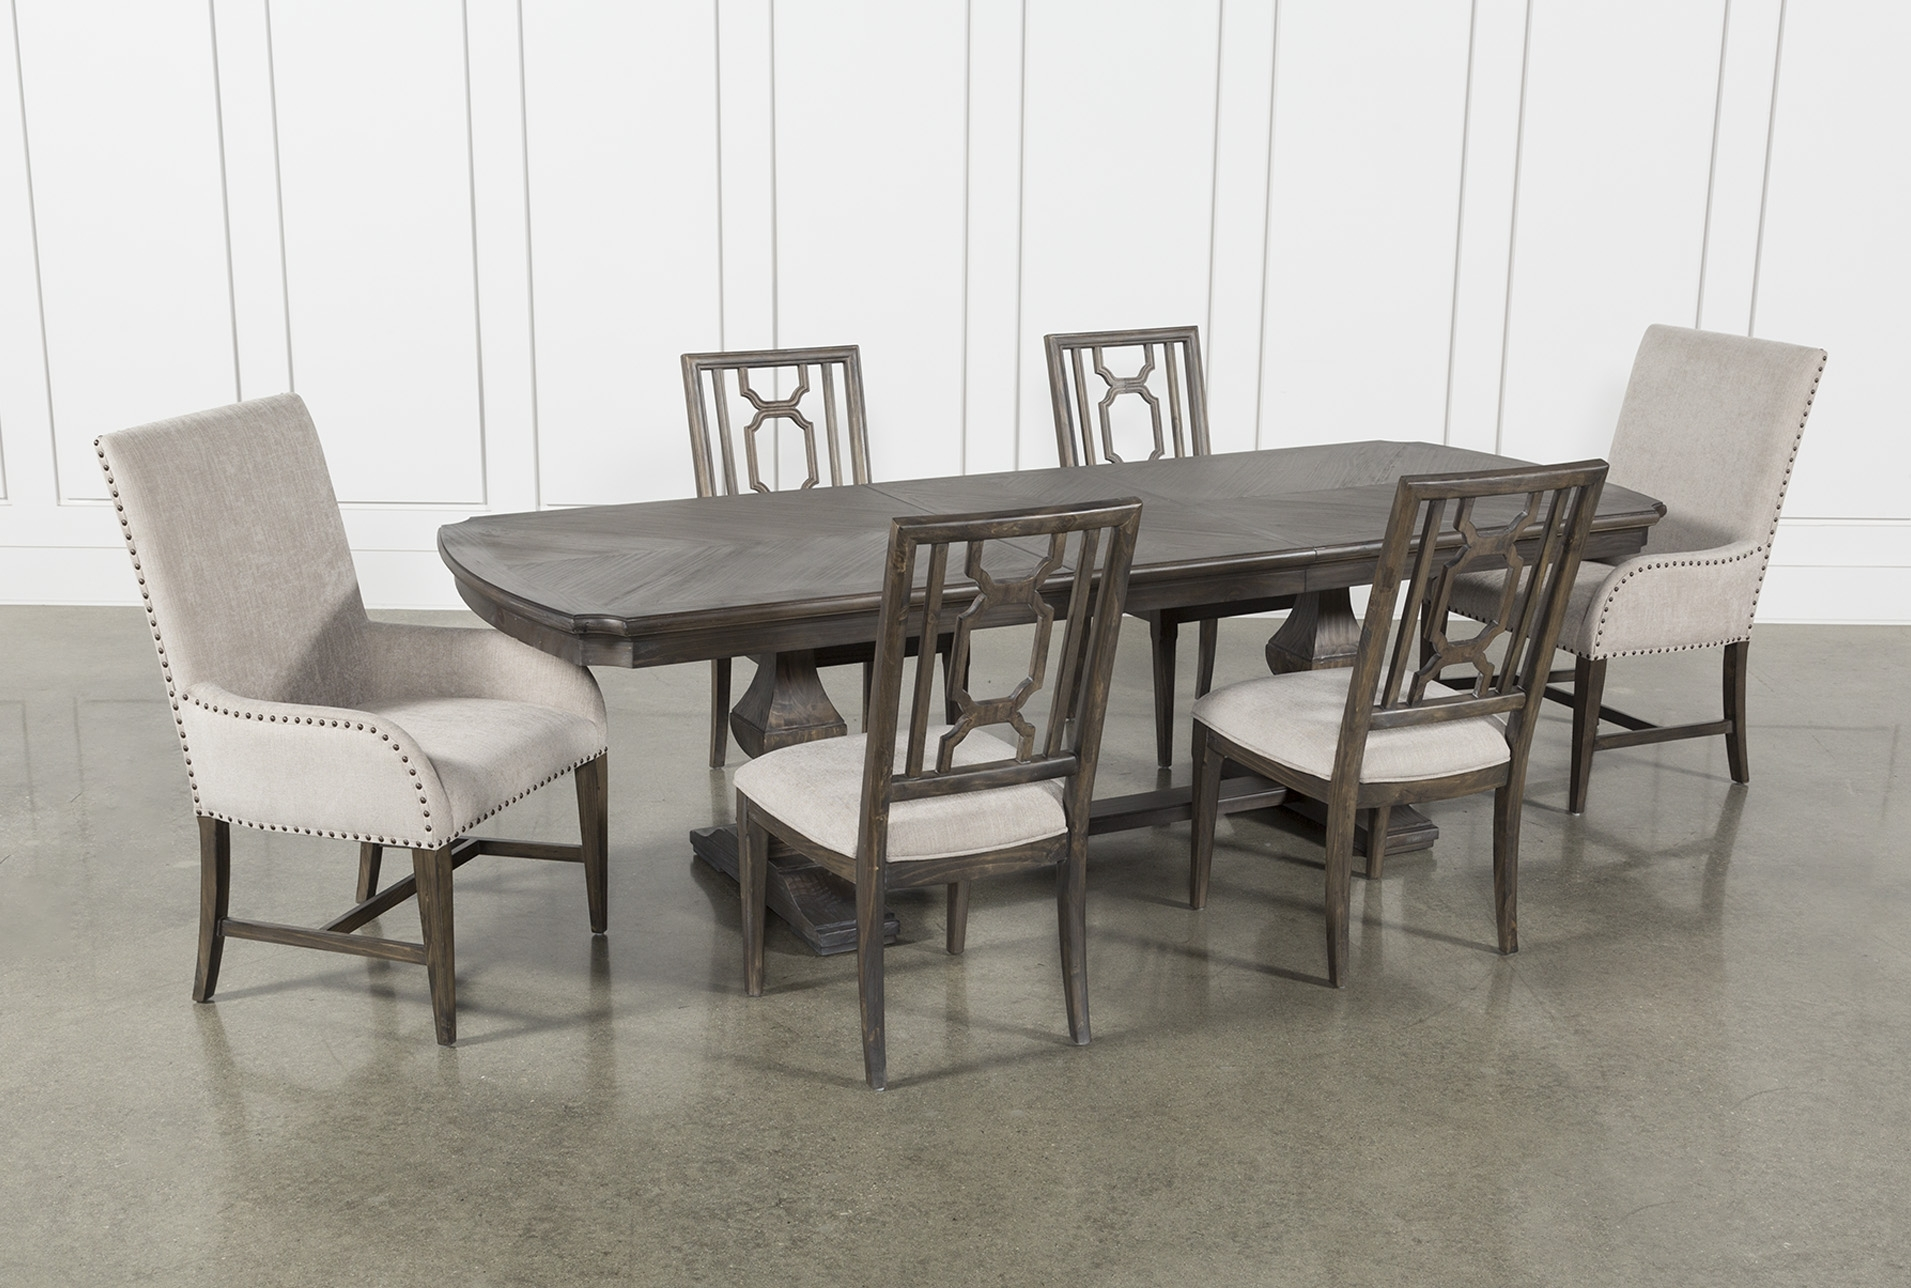 Laurent 7 Piece Rectangle Dining Set With Wood And Host Chairs Within Current Laurent 7 Piece Rectangle Dining Sets With Wood Chairs (View 1 of 20)